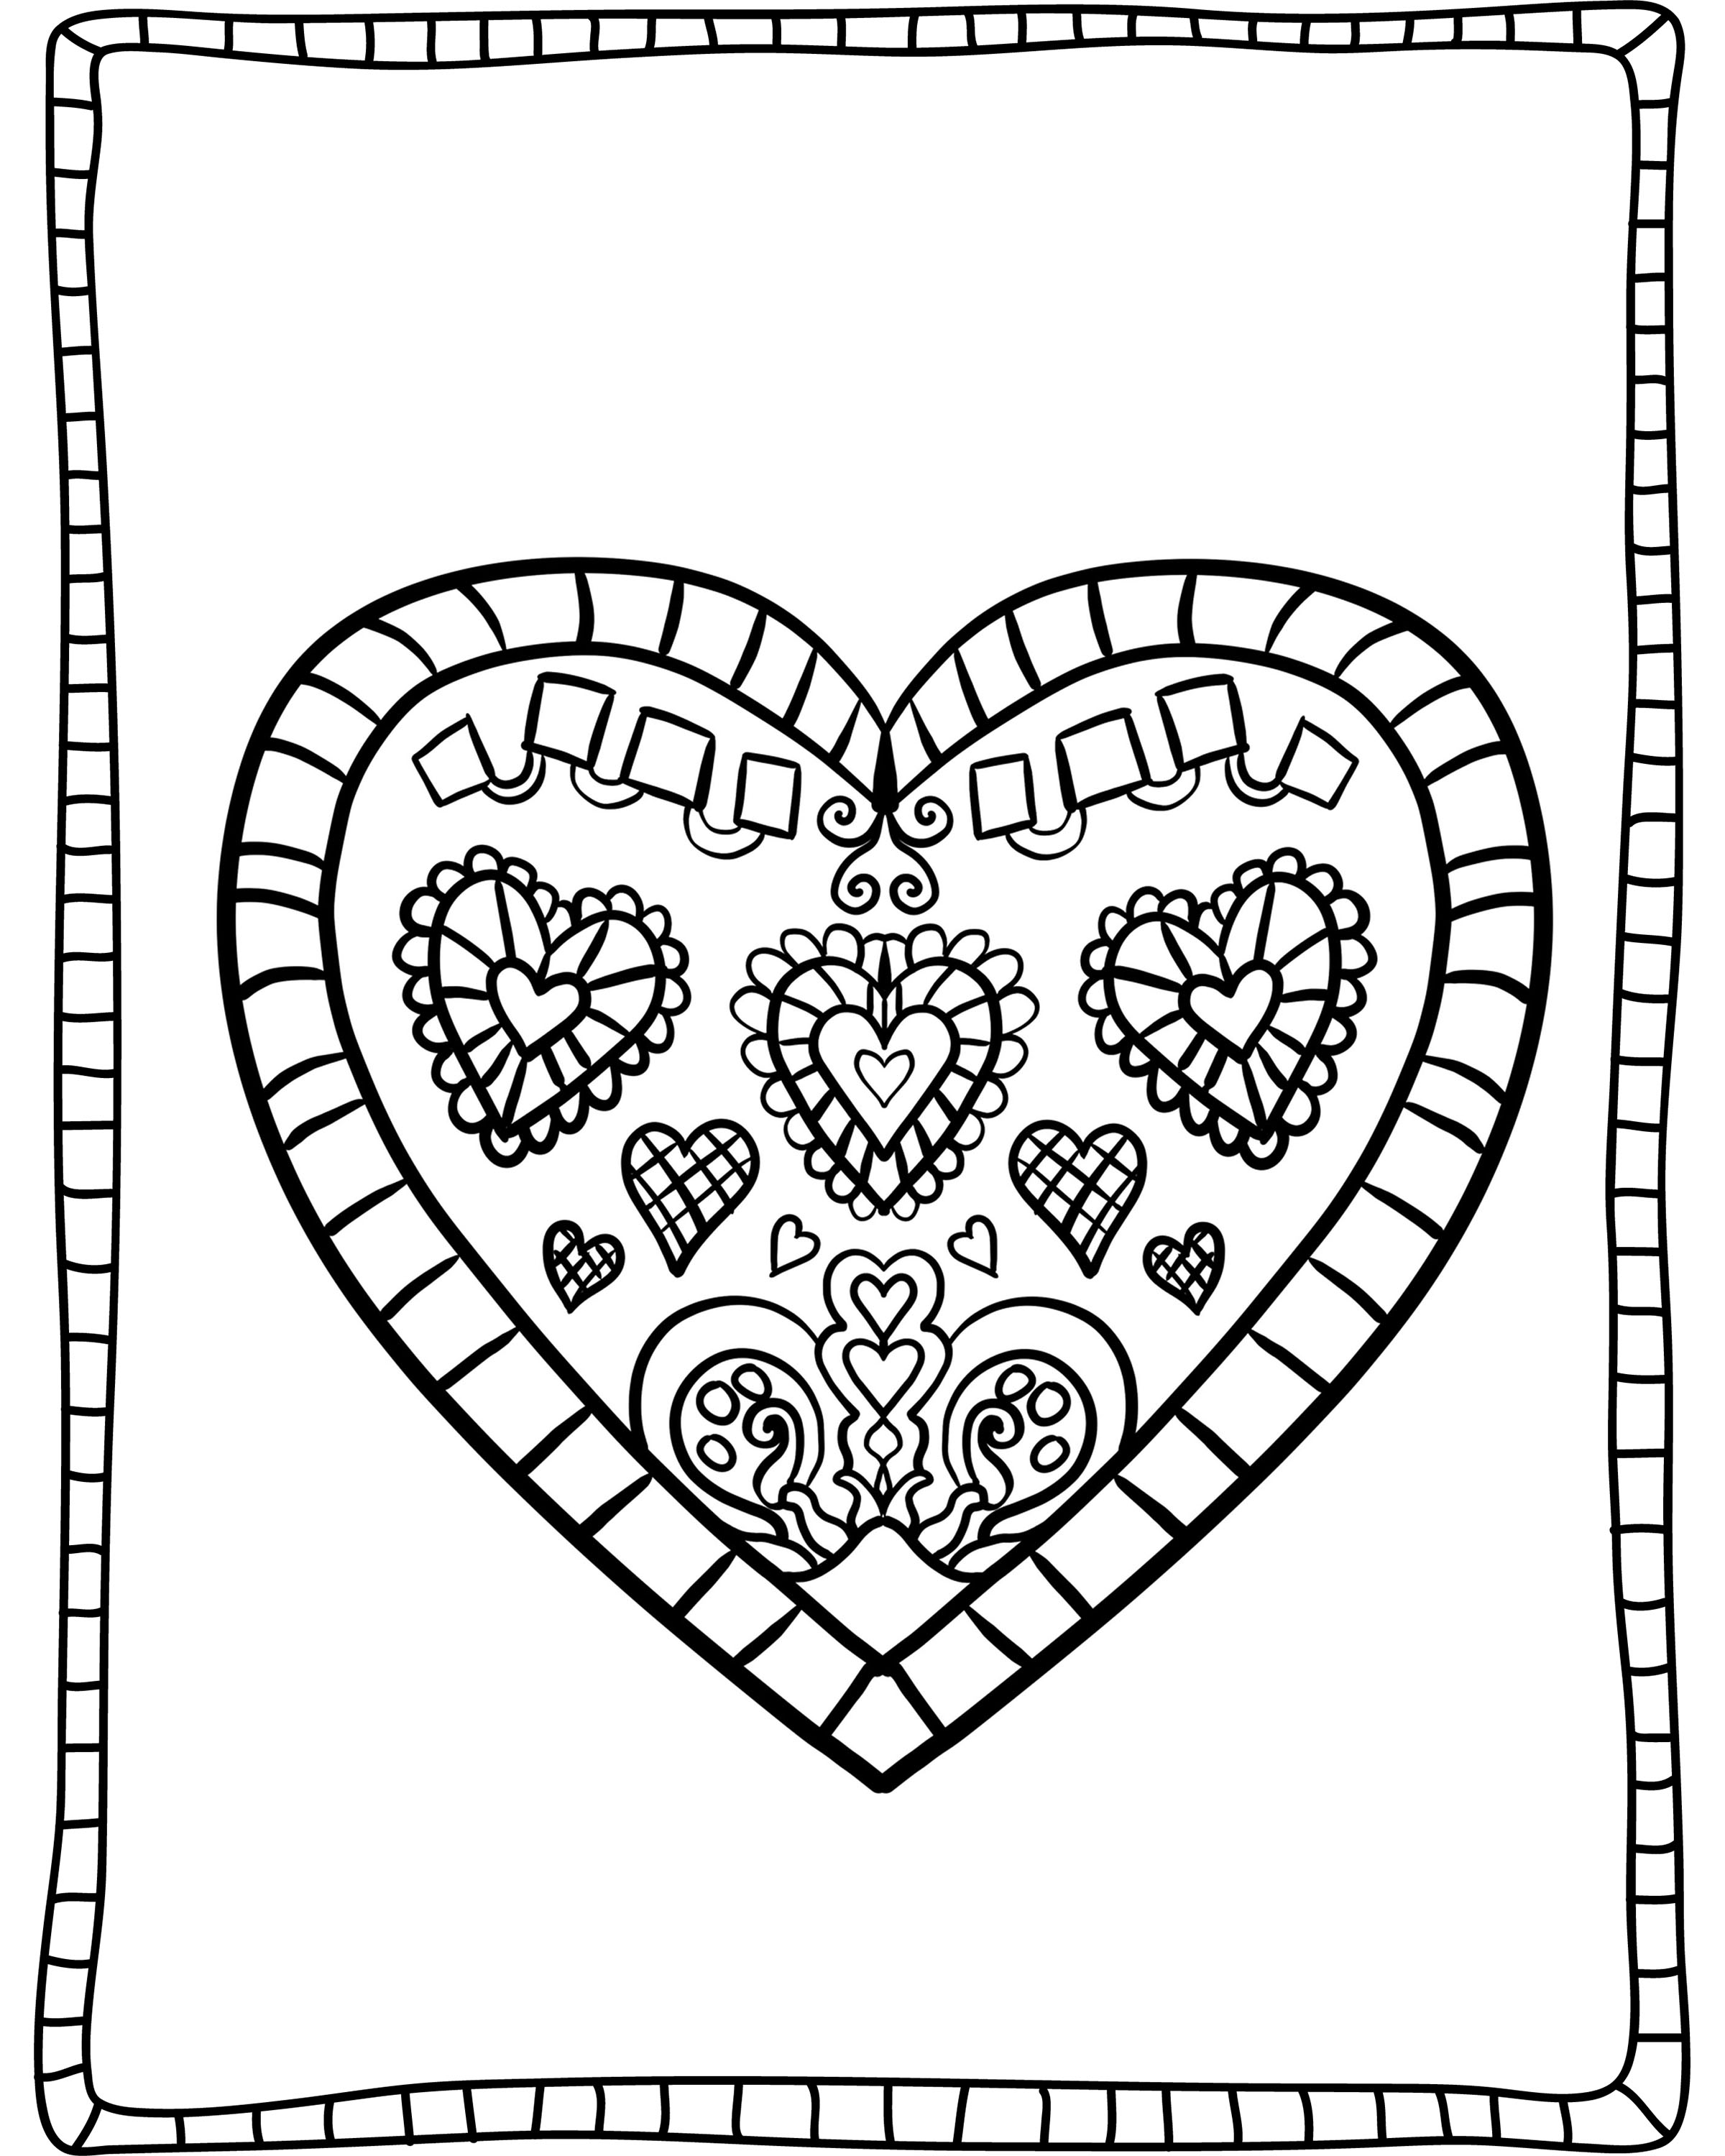 valentines day heart coloring pages valentine heart coloring pages best coloring pages for kids valentines day pages coloring heart